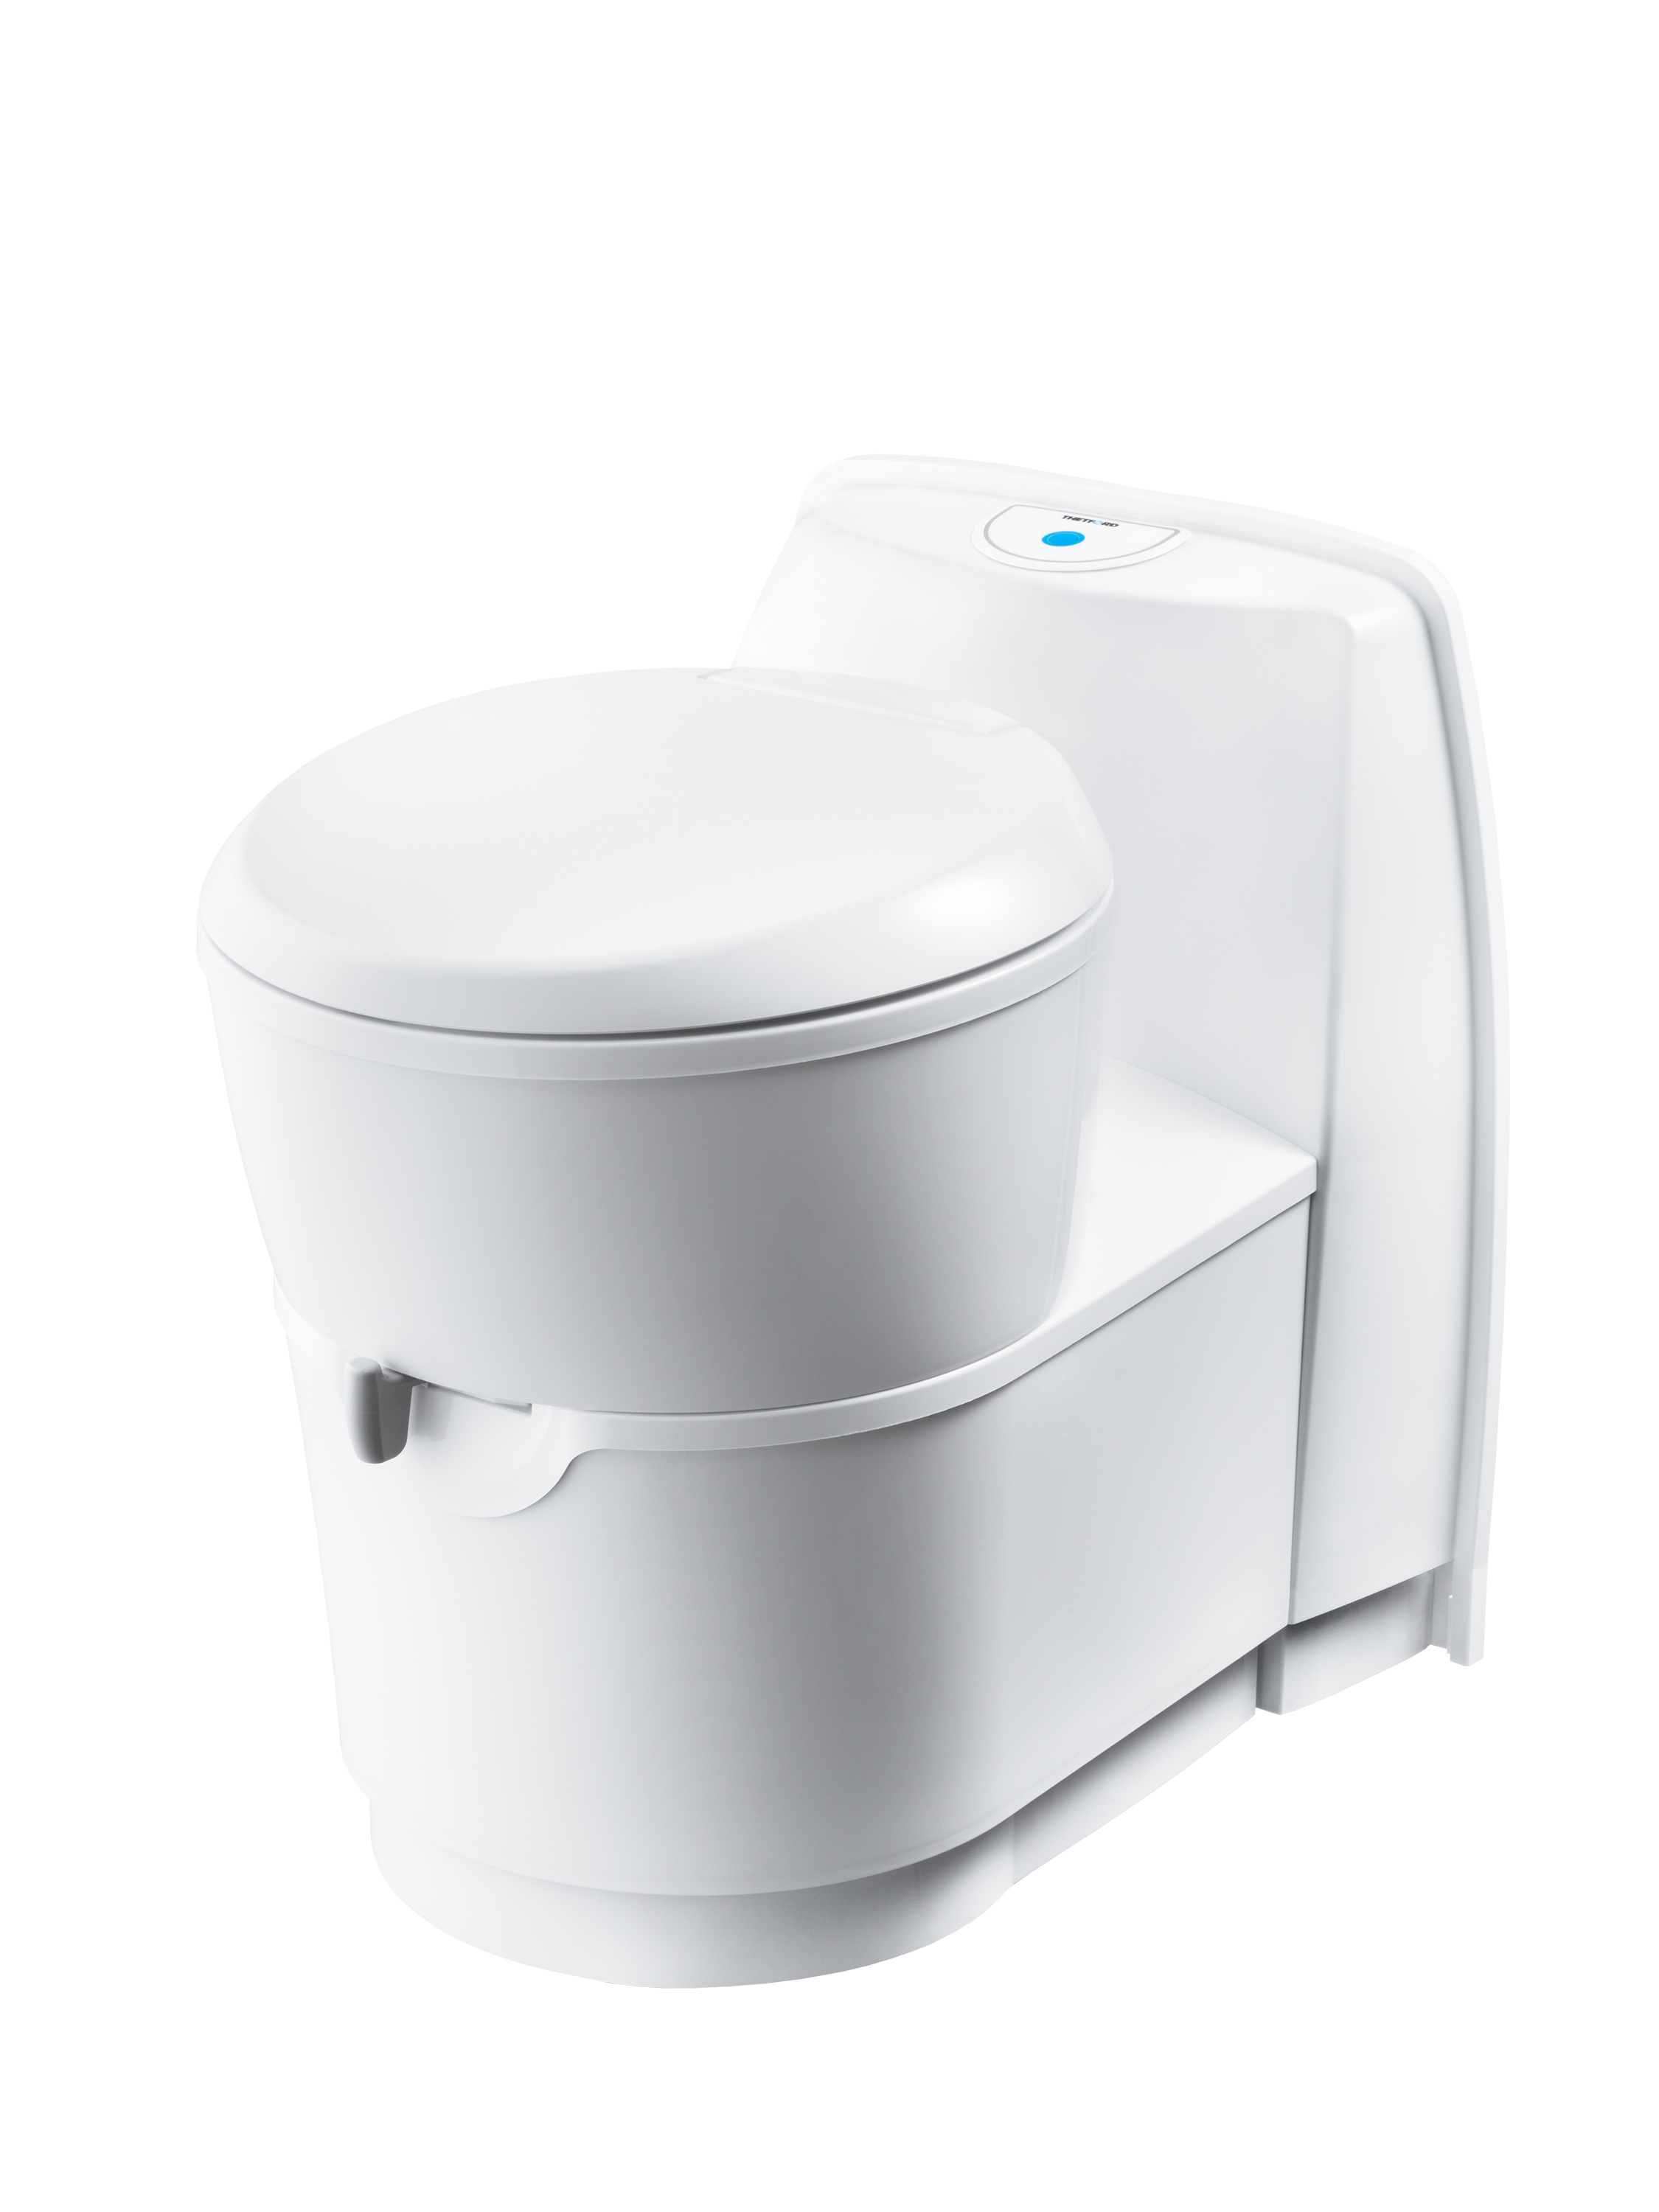 C220 S Cs Cw Cassette Toilets Products Thetford